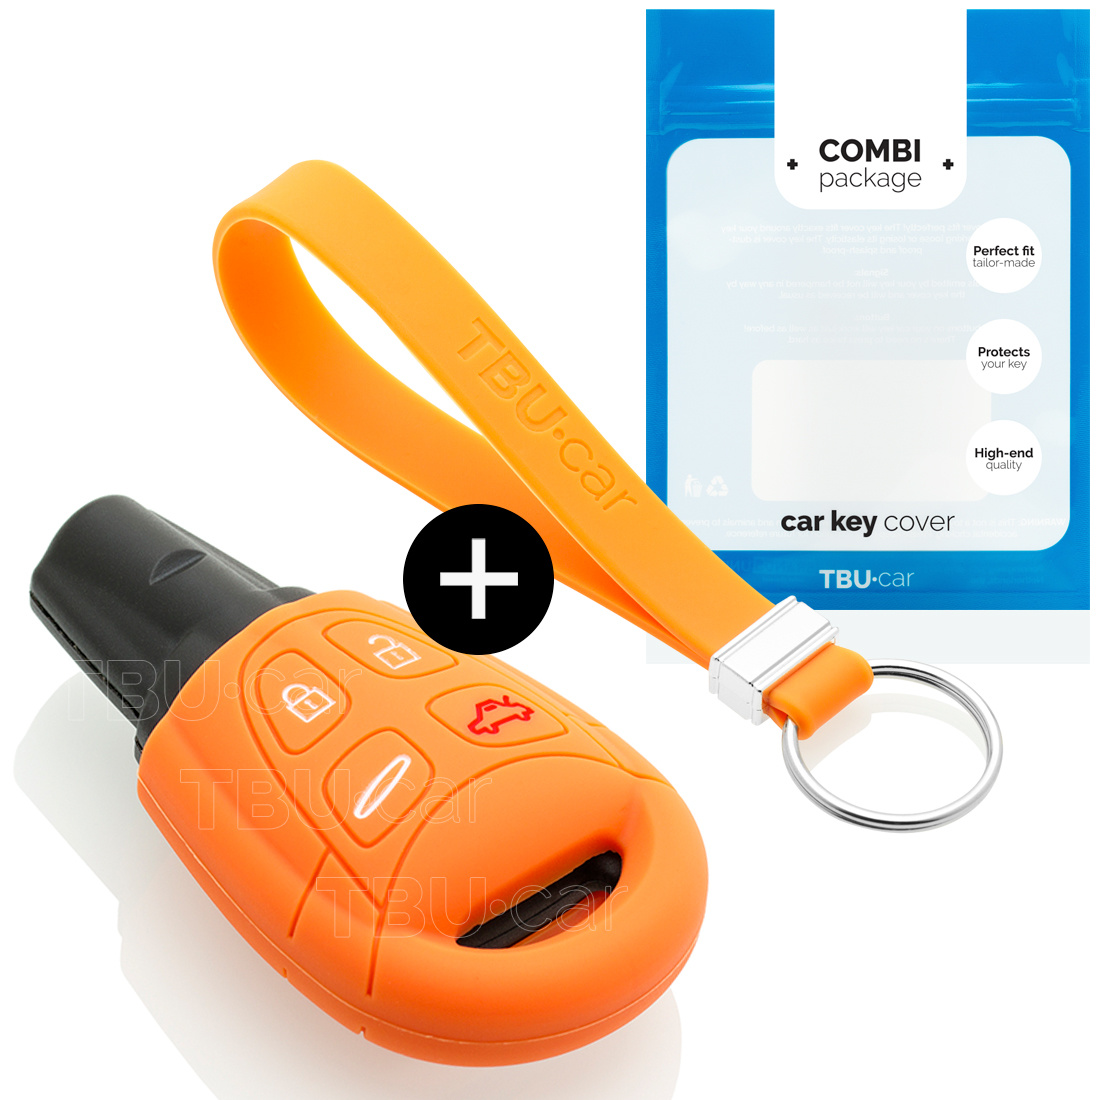 Saab Car key cover - Silicone Protective Remote Key Shell - FOB Case Cover - Orange